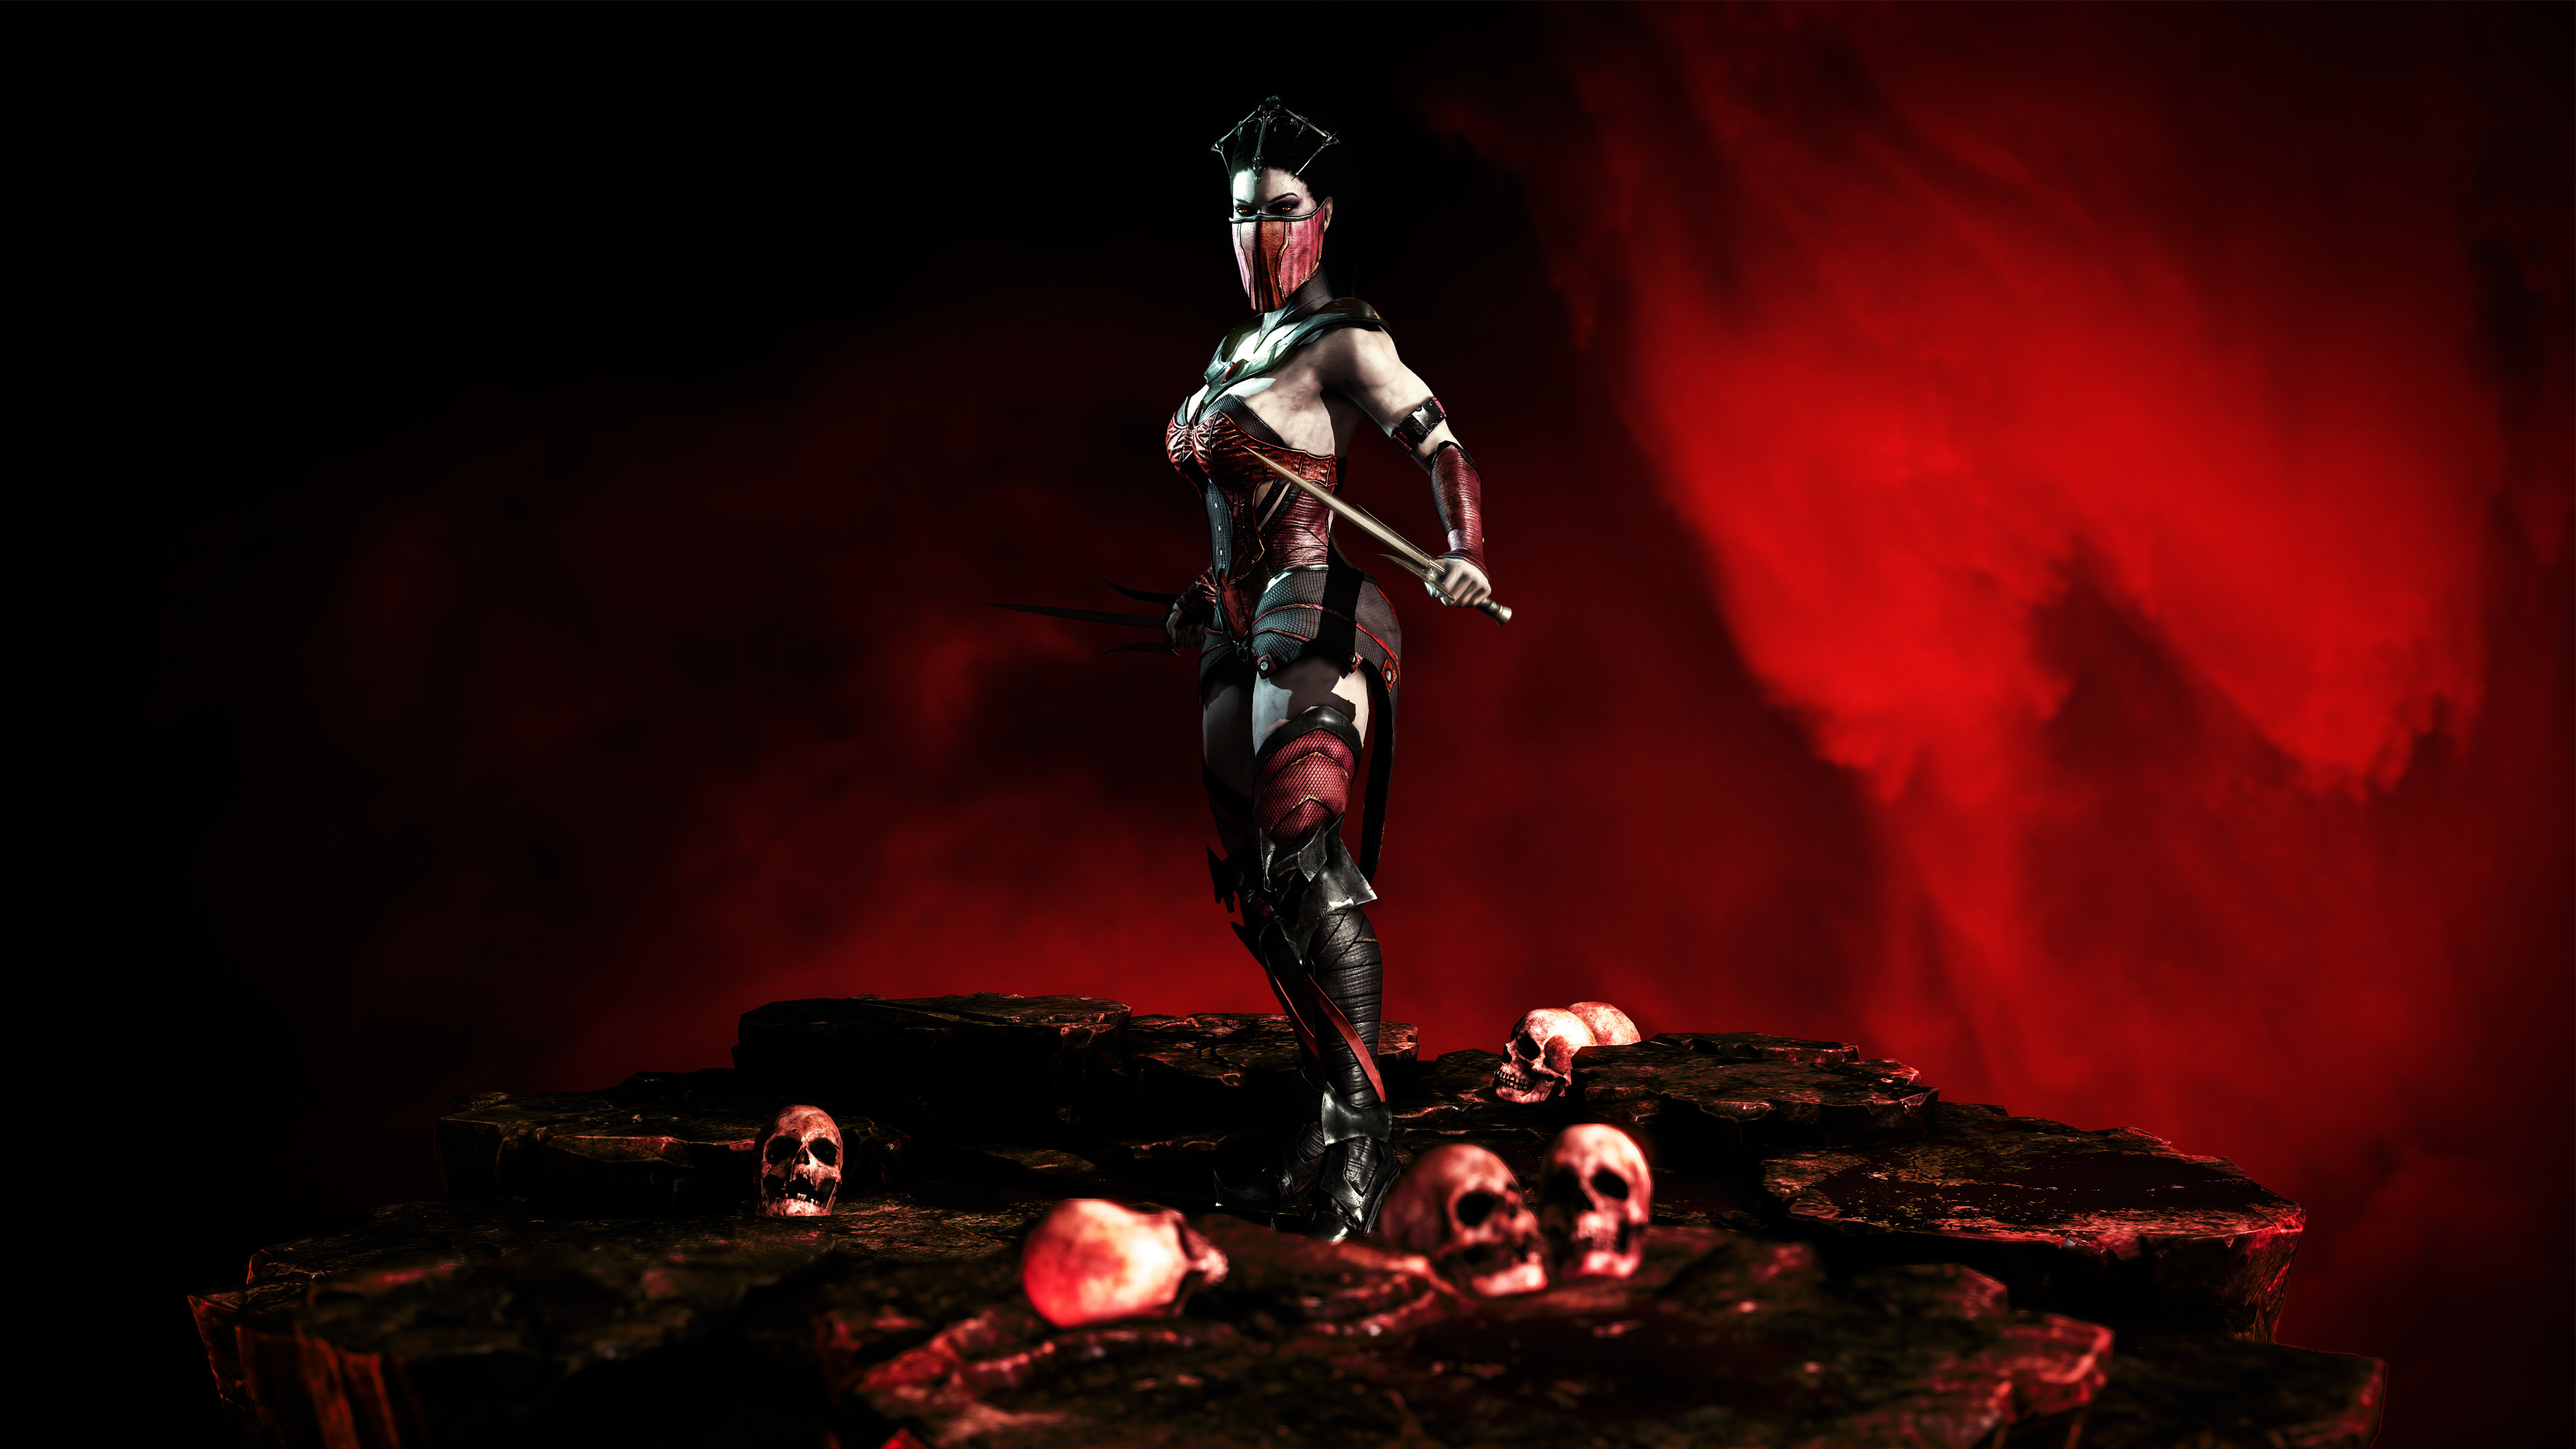 3840x2160 Mortal Kombat X Mileena K Wallpapers HD Wallpapers